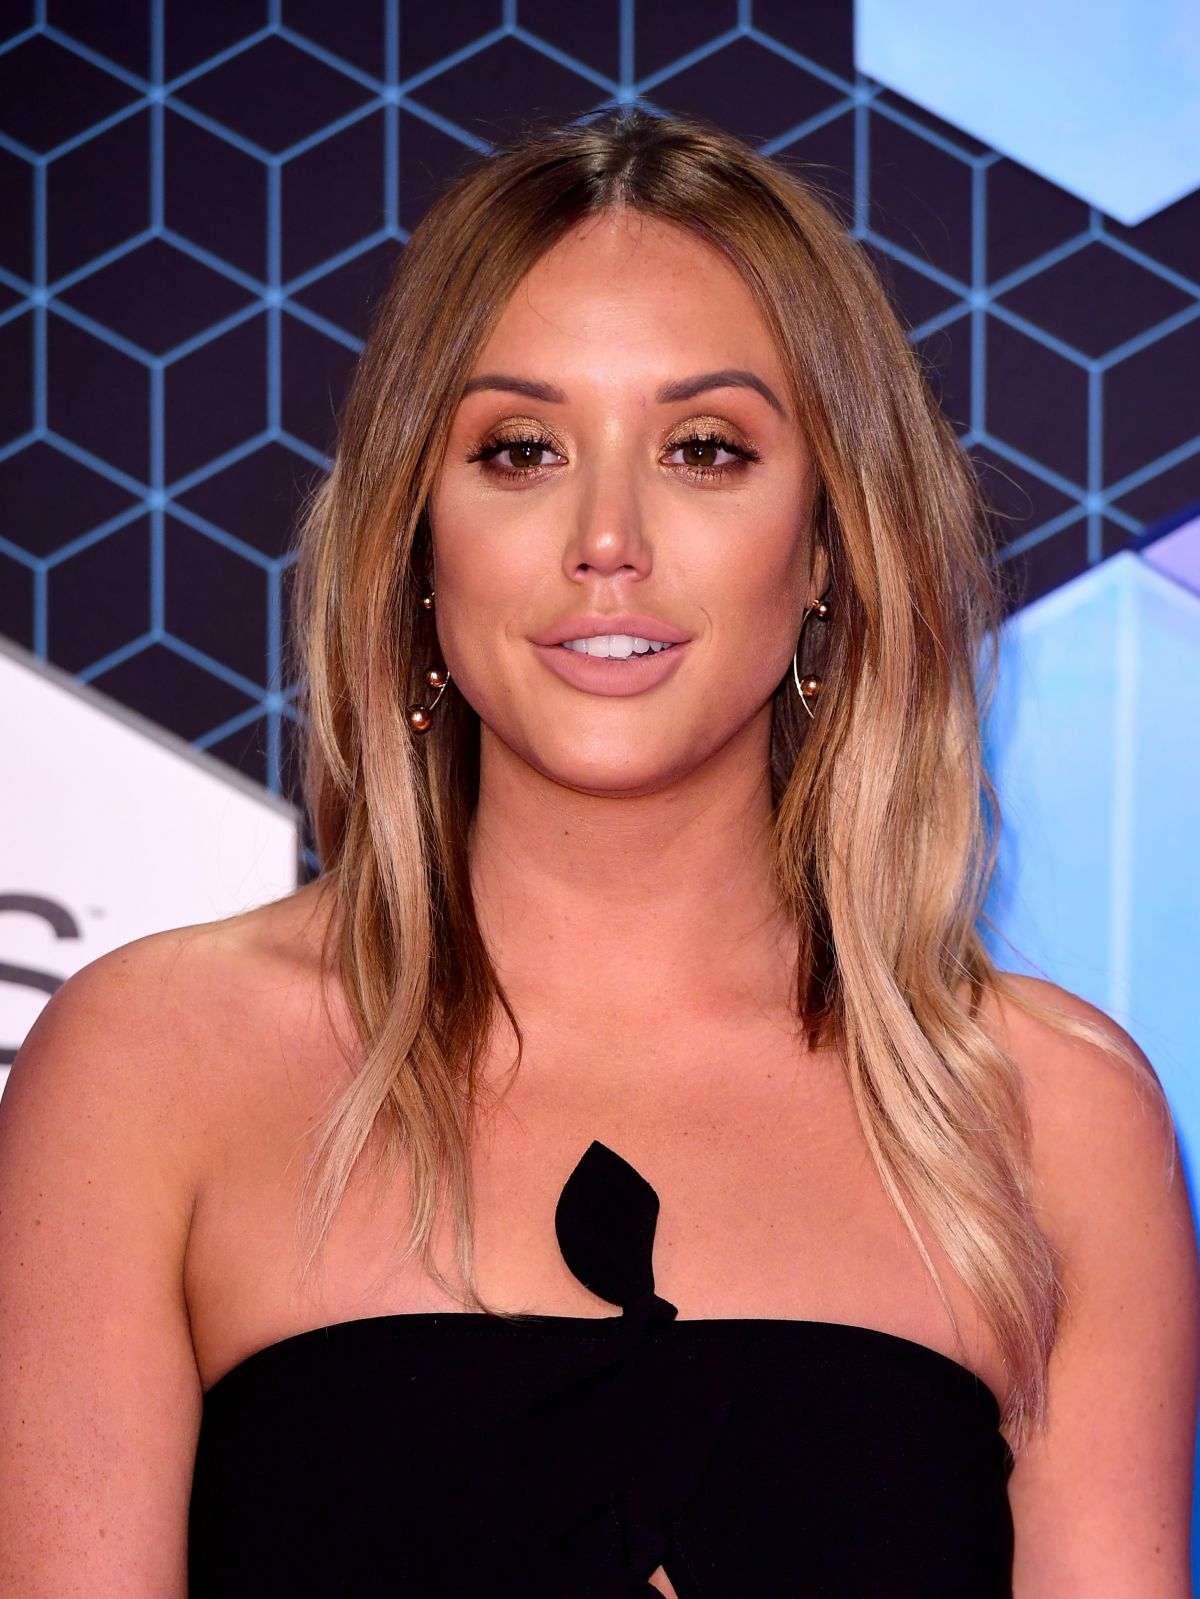 CHARLOTTE CROSBY at MTV Europe Music Awards 2016 in Rotterdam 11/06/2016 – HawtCelebs